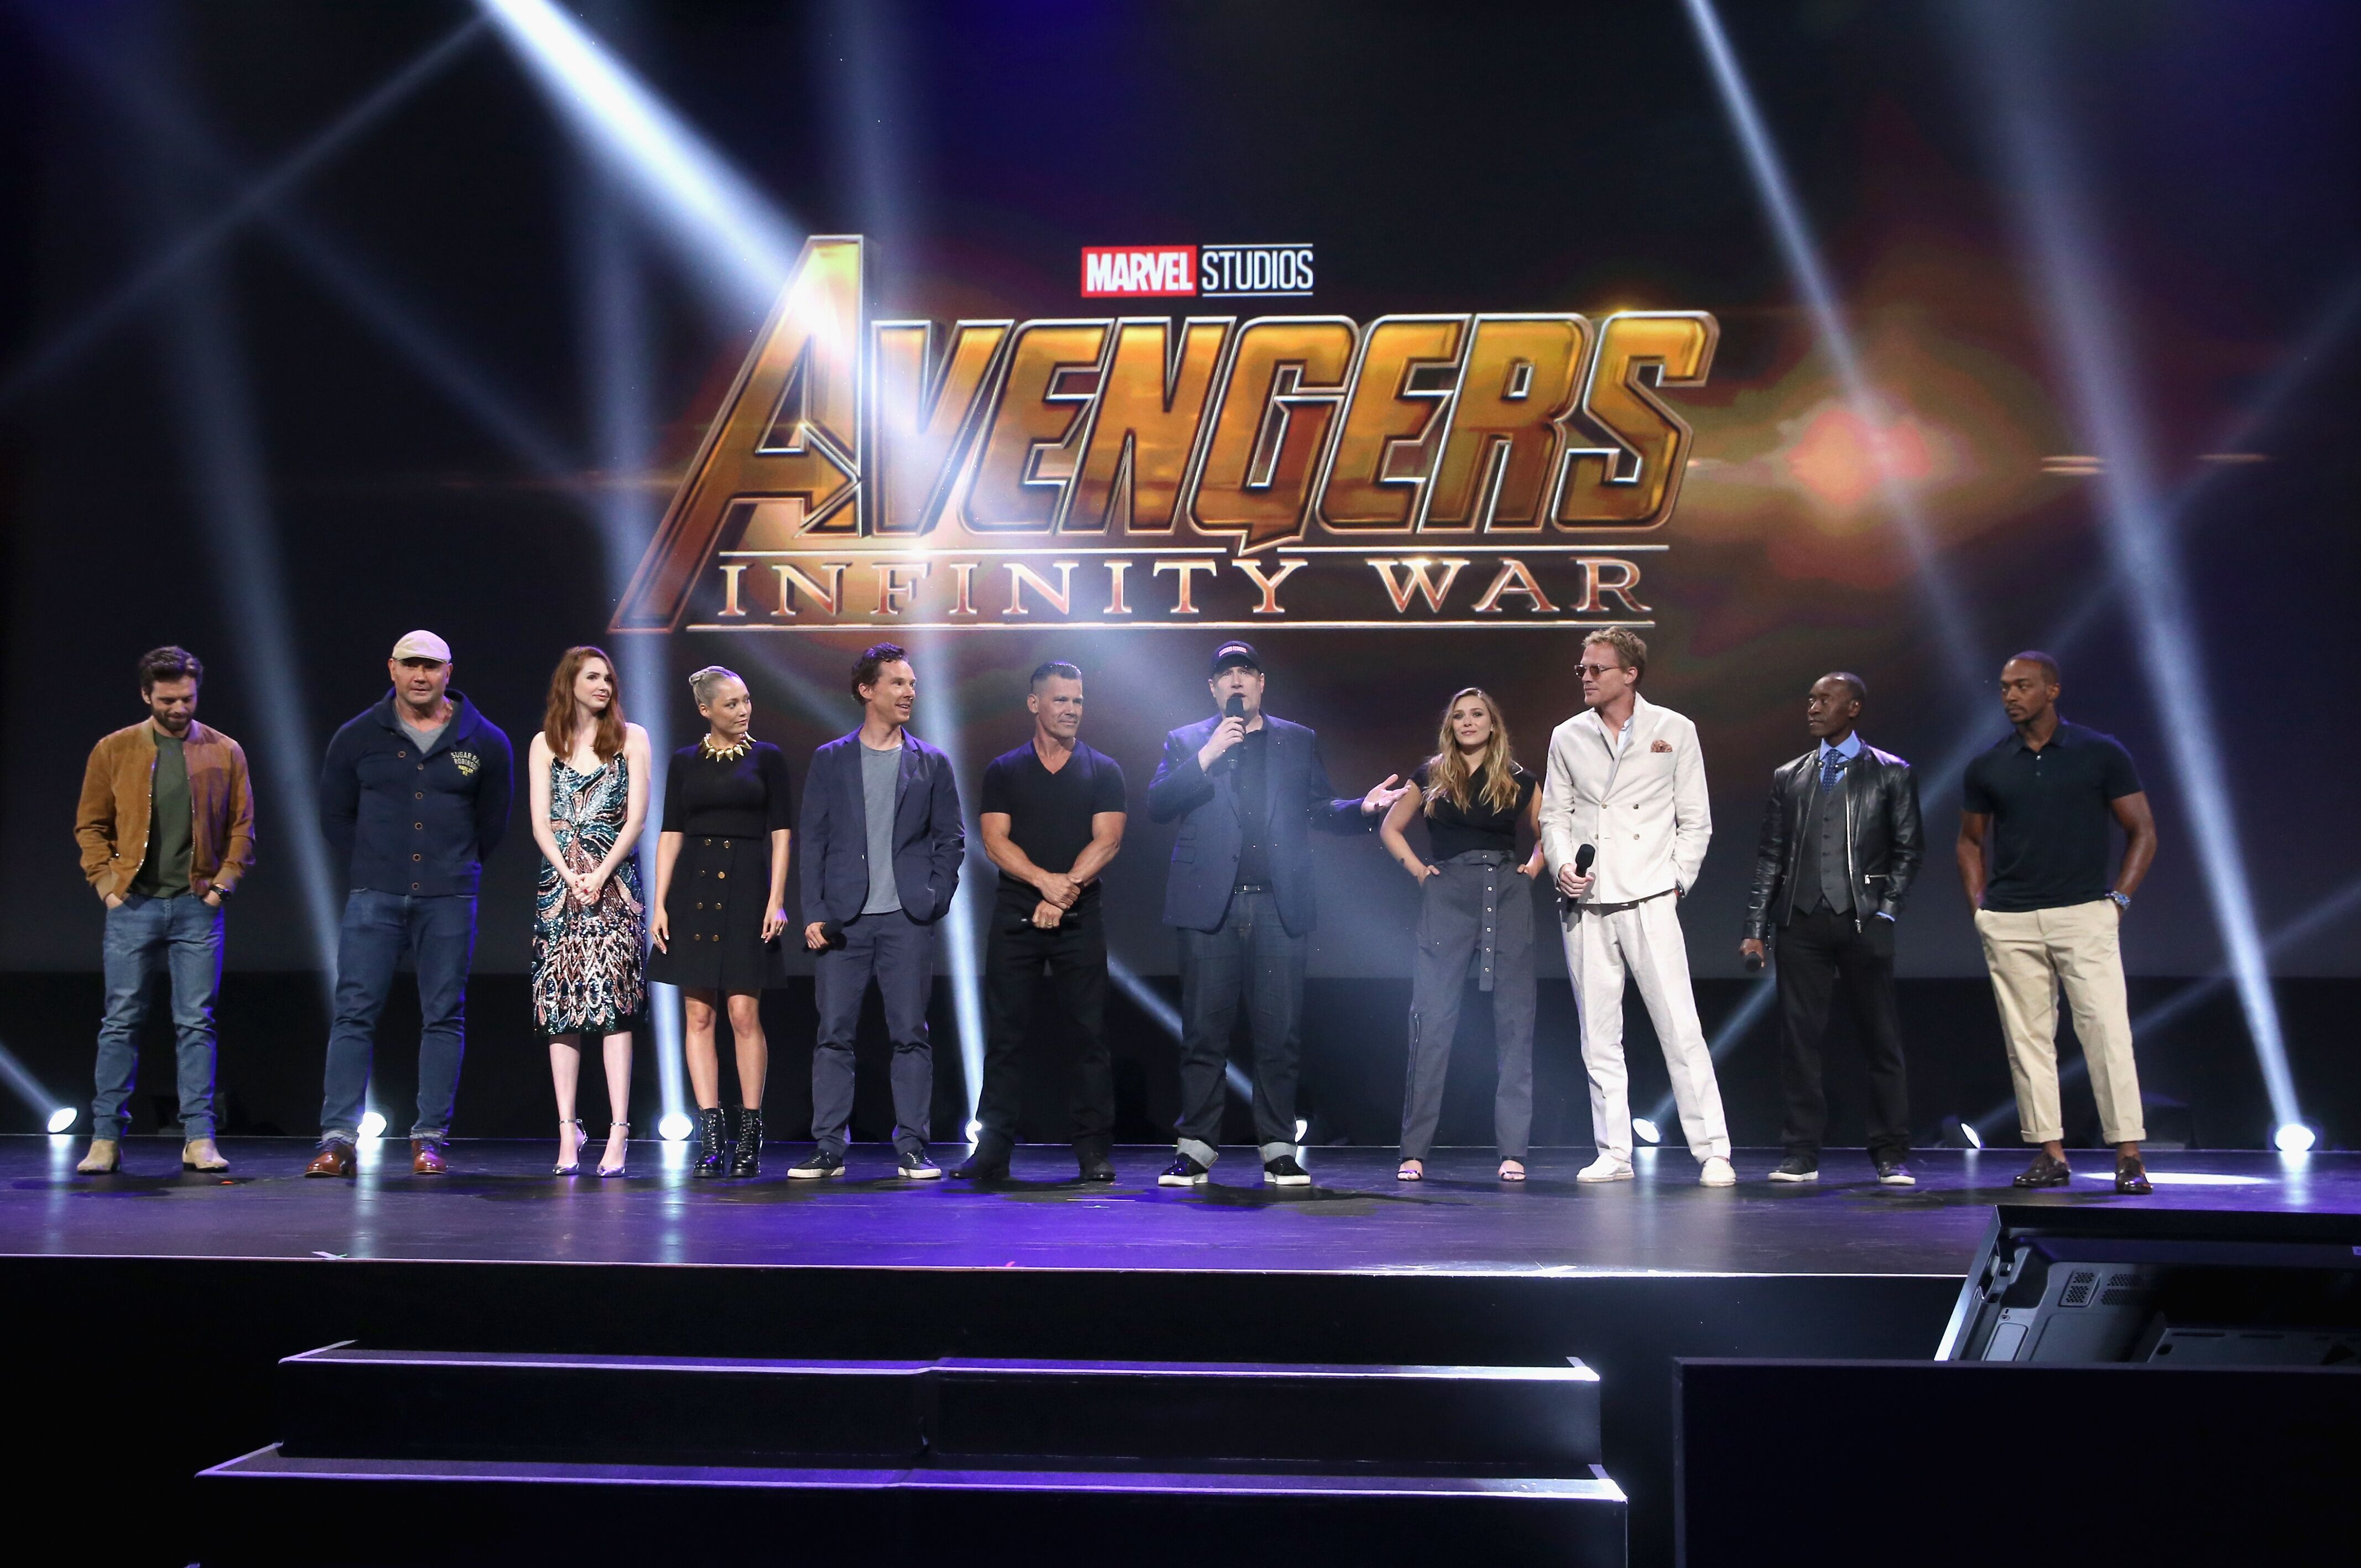 ANAHEIM, CA - JULY 15: (L-R) Actors Sebastian Stan, Dave Bautista, Karen Gillan, Pom Klementieff, Benedict Cumberbatch, and Josh Brolin, producer Kevin Feige, and actors Elizabeth Olsen, Paul Bettany, Don Cheadle, and Anthony Mackie of AVENGERS: INFINITY WAR took part today in the Walt Disney Studios live action presentation at Disney's D23 EXPO 2017 in Anaheim, Calif. AVENGERS: INFINITY WAR will be released in U.S. theaters on May 4, 2018. (Photo by Jesse Grant/Getty Images for Disney)